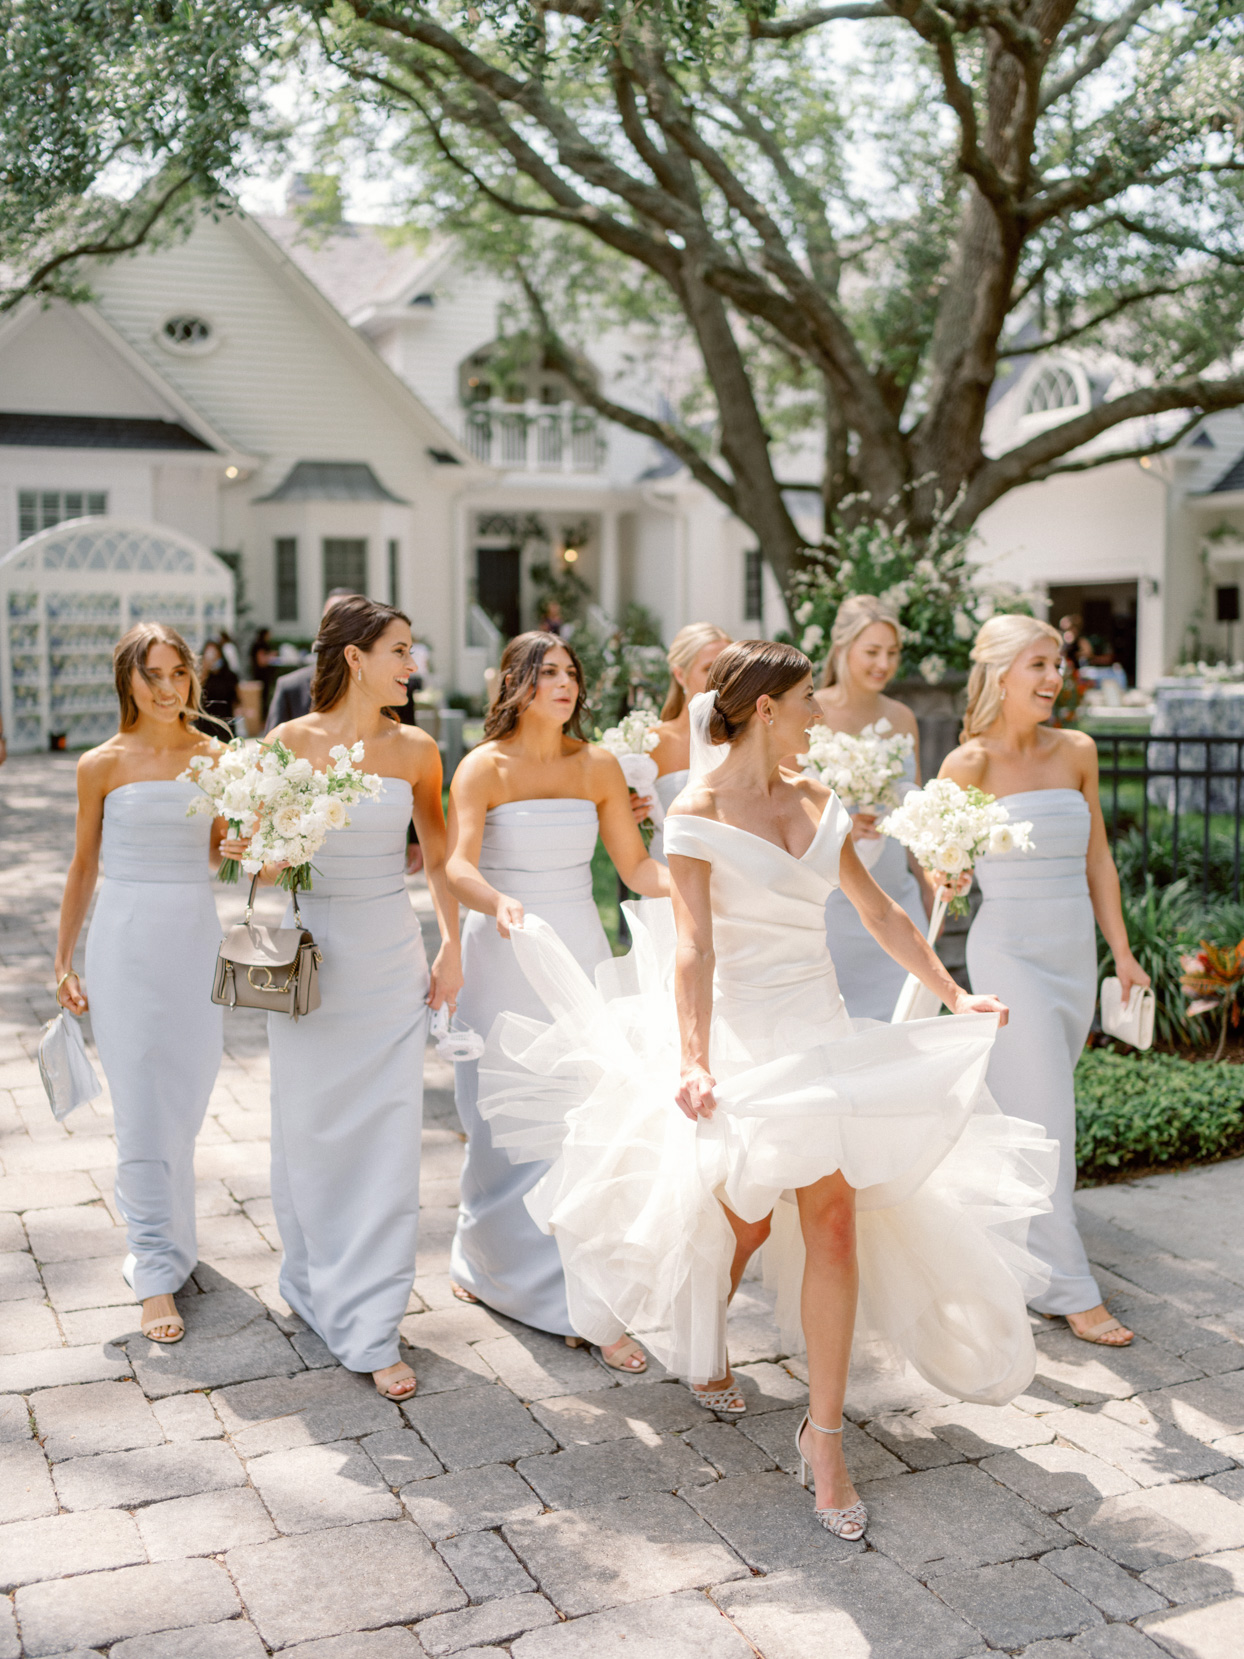 bridesmaids wearing pale blue dresses walking with bride